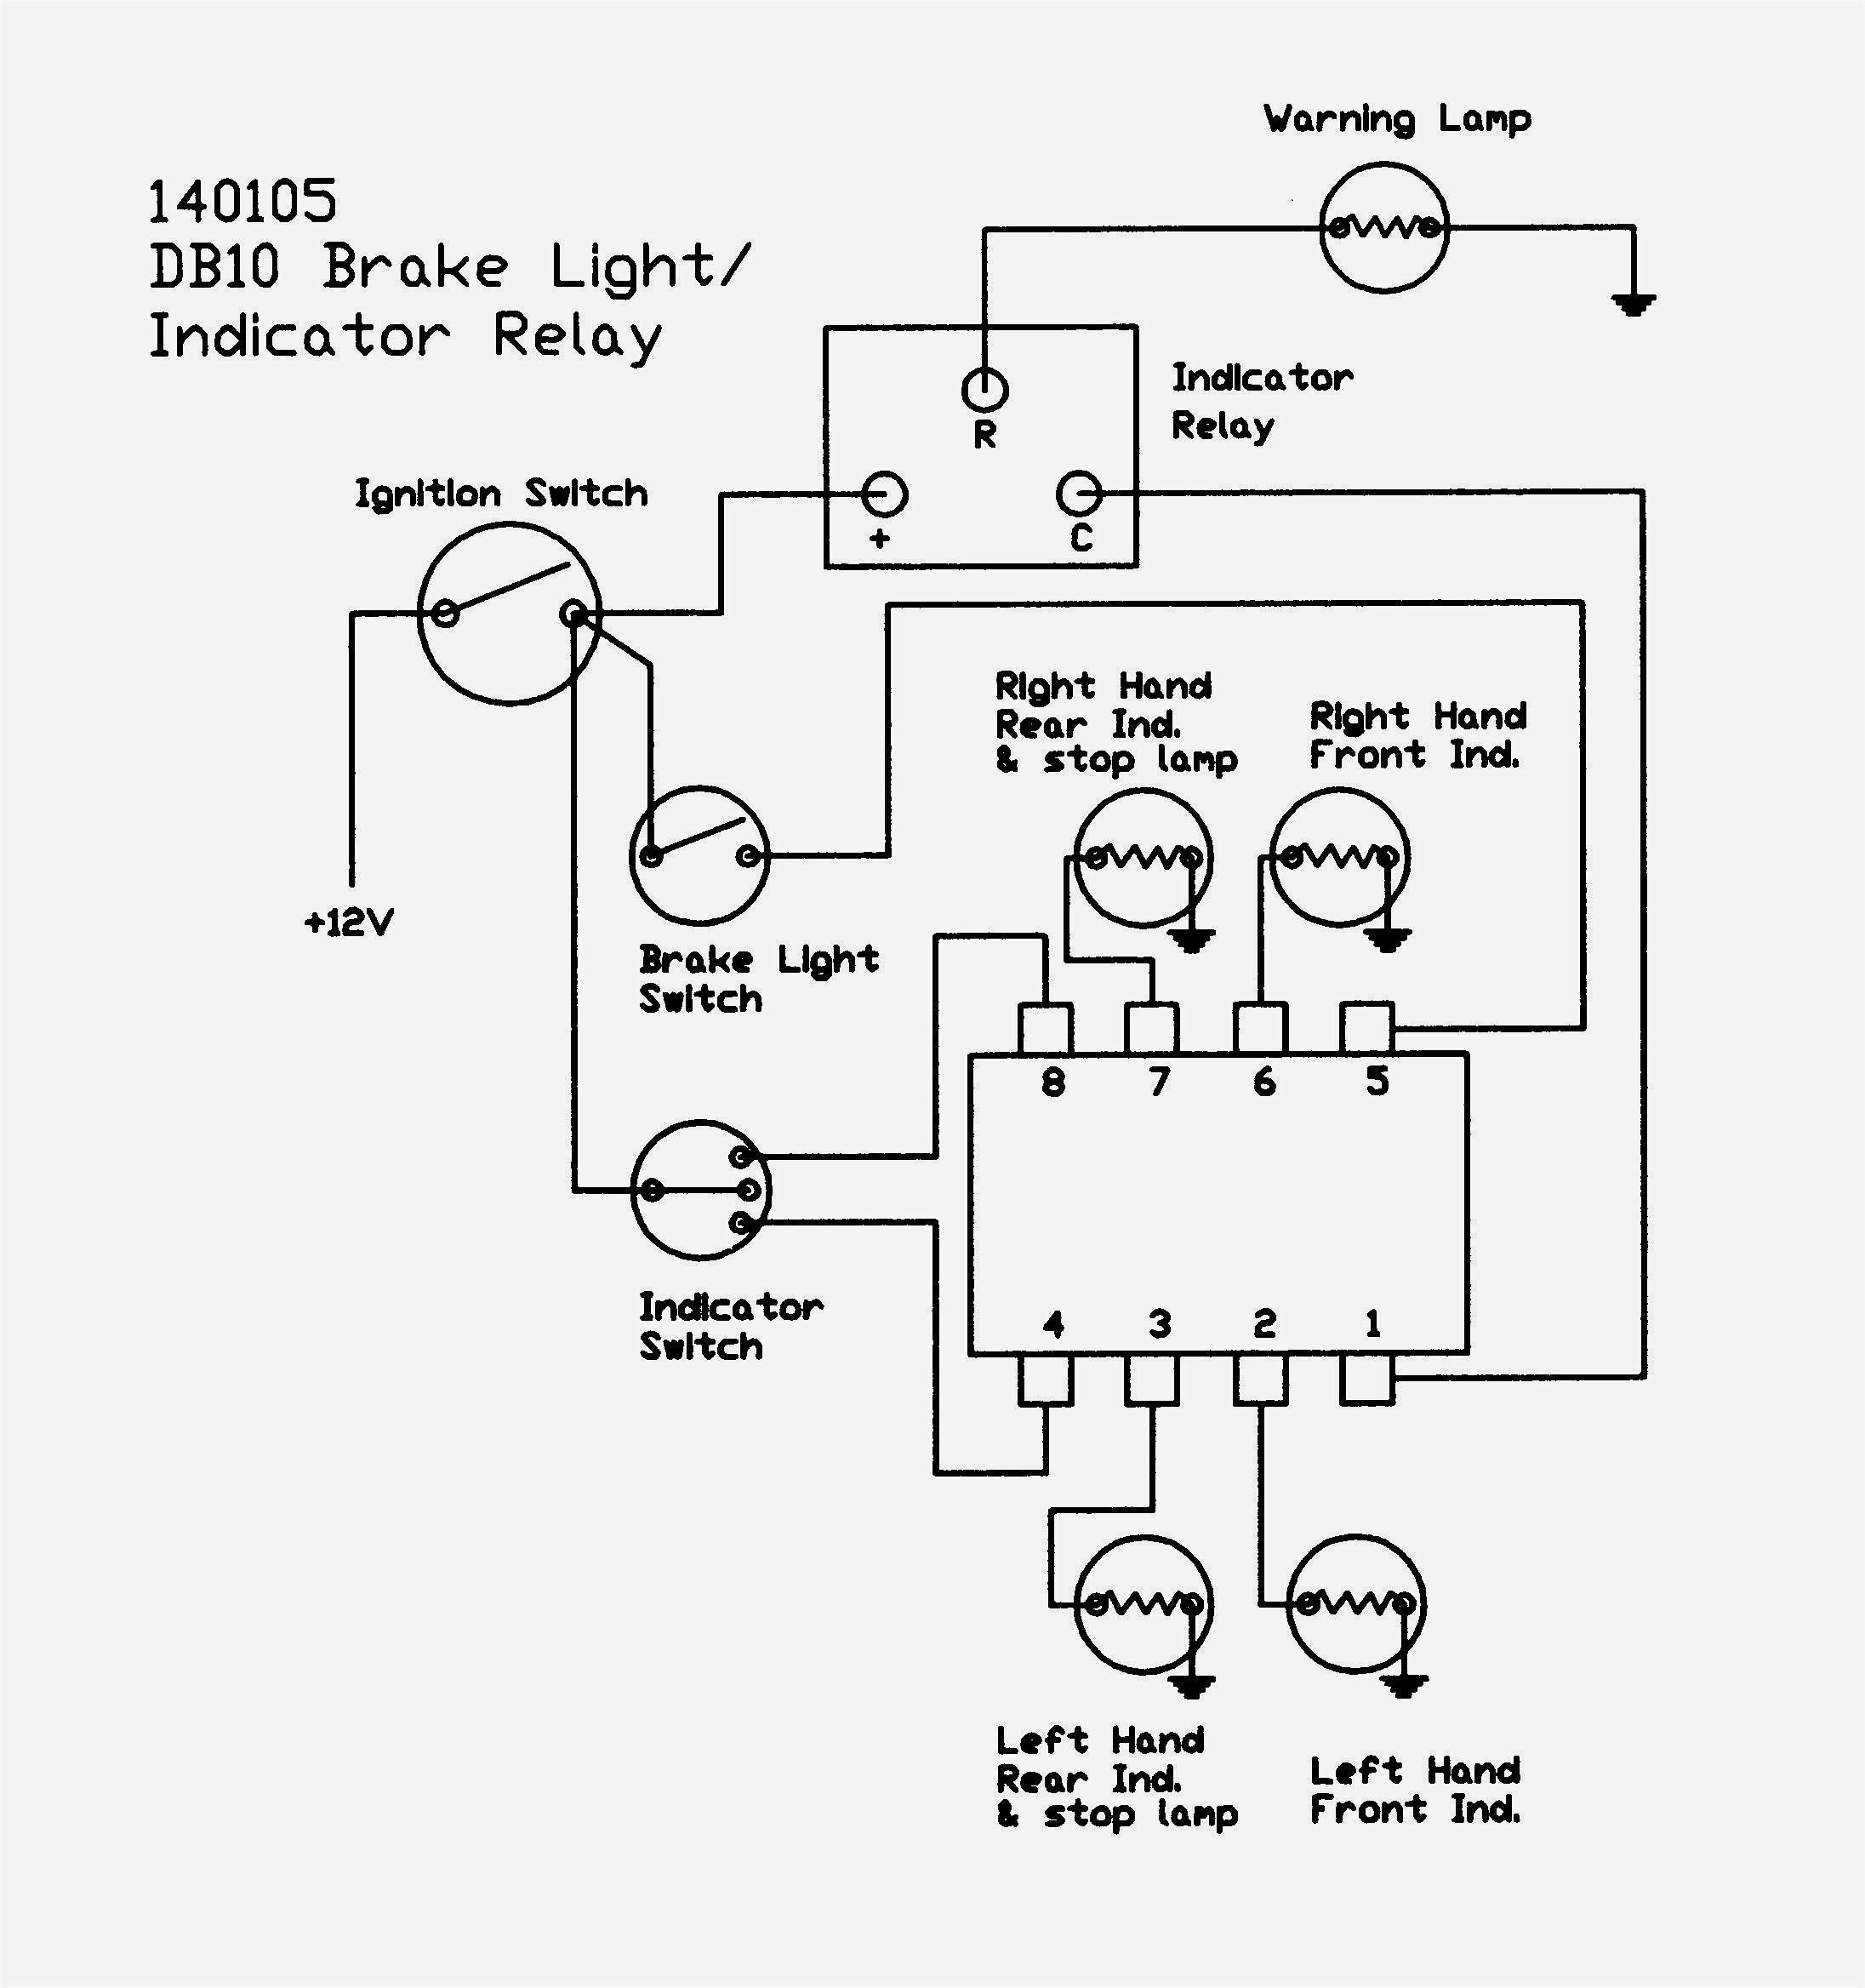 Unique Wiring Diagram for Outdoor Motion Detector Light #